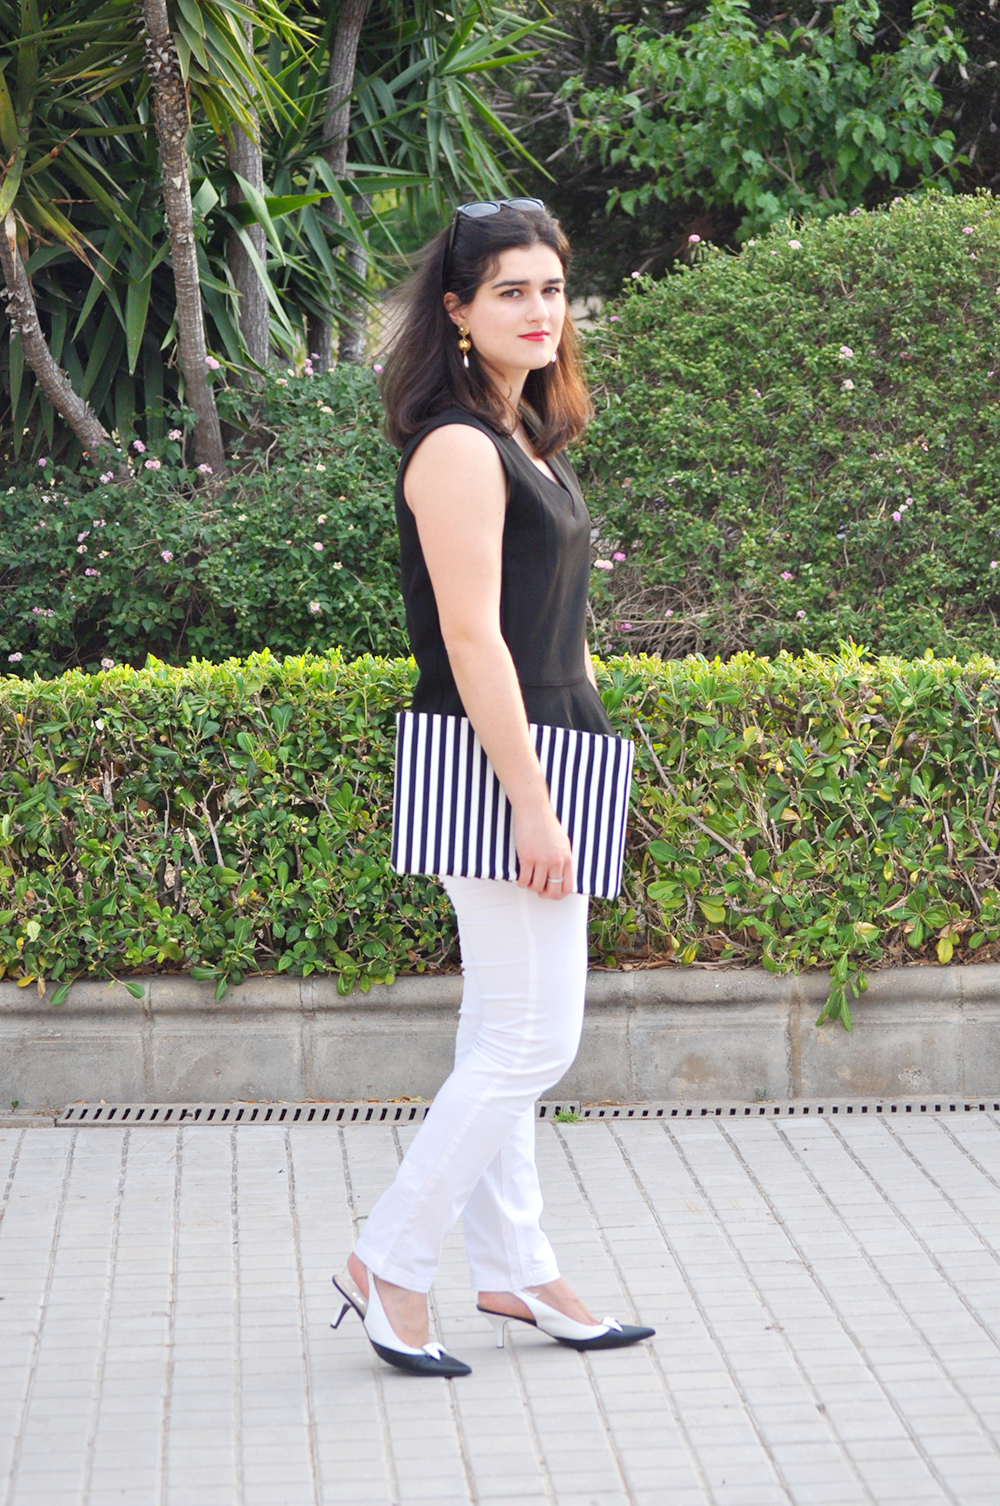 fashion valencia blogger, somethingfashion diy clutch bimba y lola, white streetstyle vlc outfit blog moda, prada vintage earrings, bimbaylola top estilo